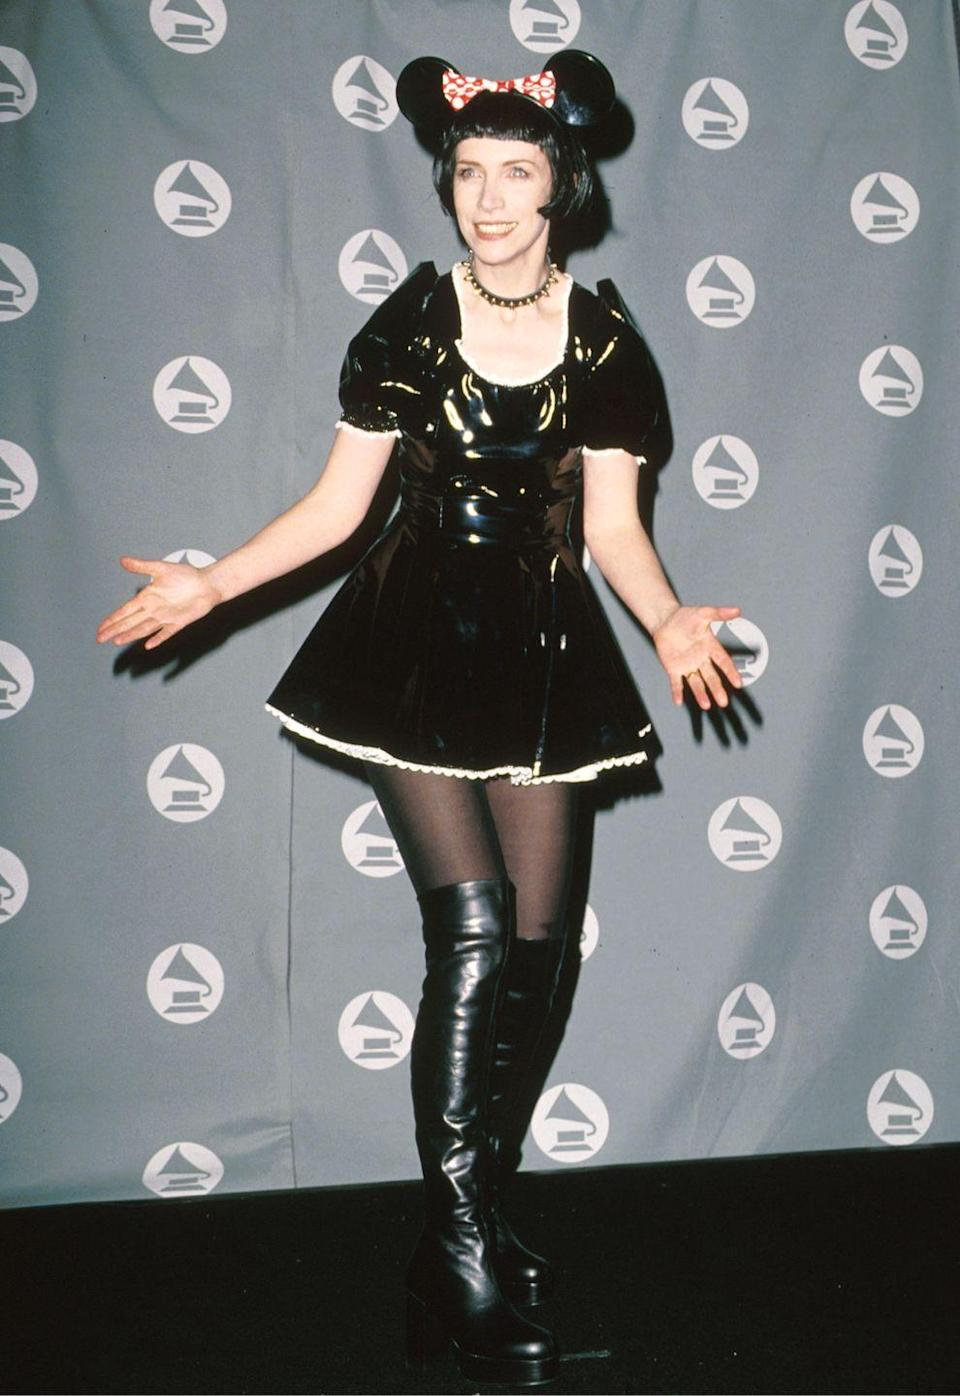 <p>The Scottish singer wore a Minnie Mouse–inspired outfit with a black-and-white latex dress, over-the-knee boots, and mouse ears to the Grammy Awards. </p>